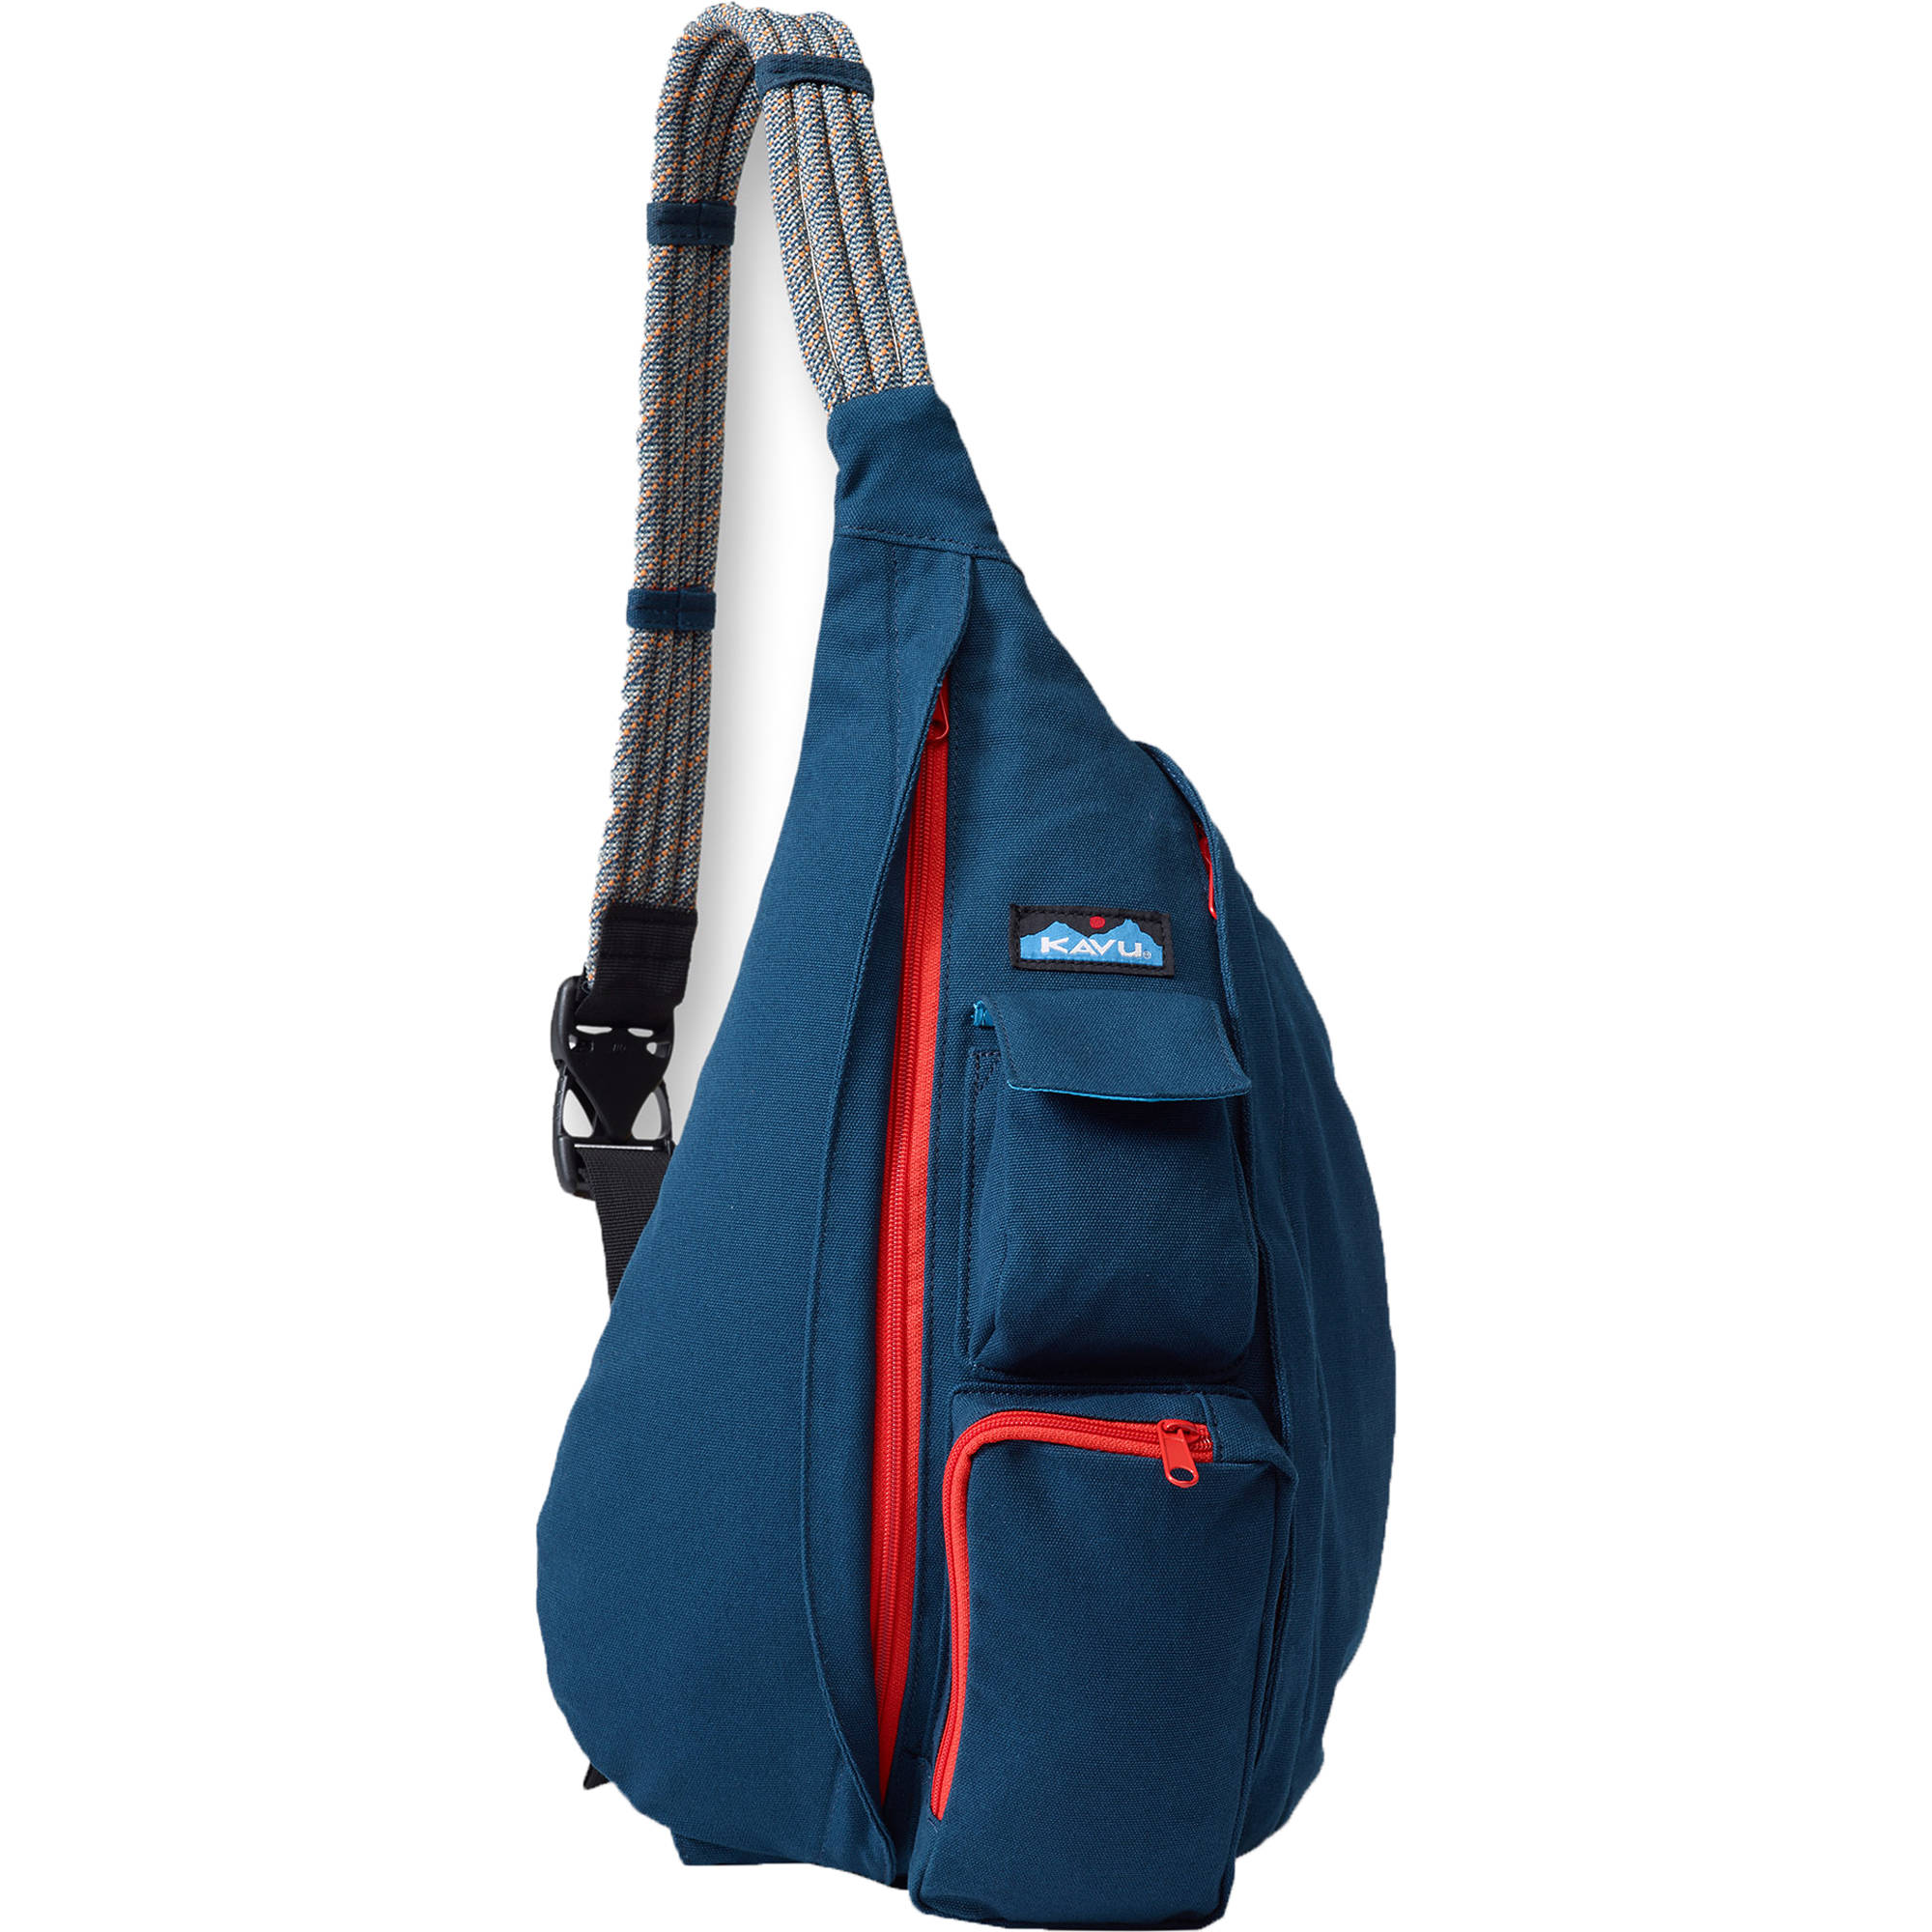 Kavu Rope Bag Navy